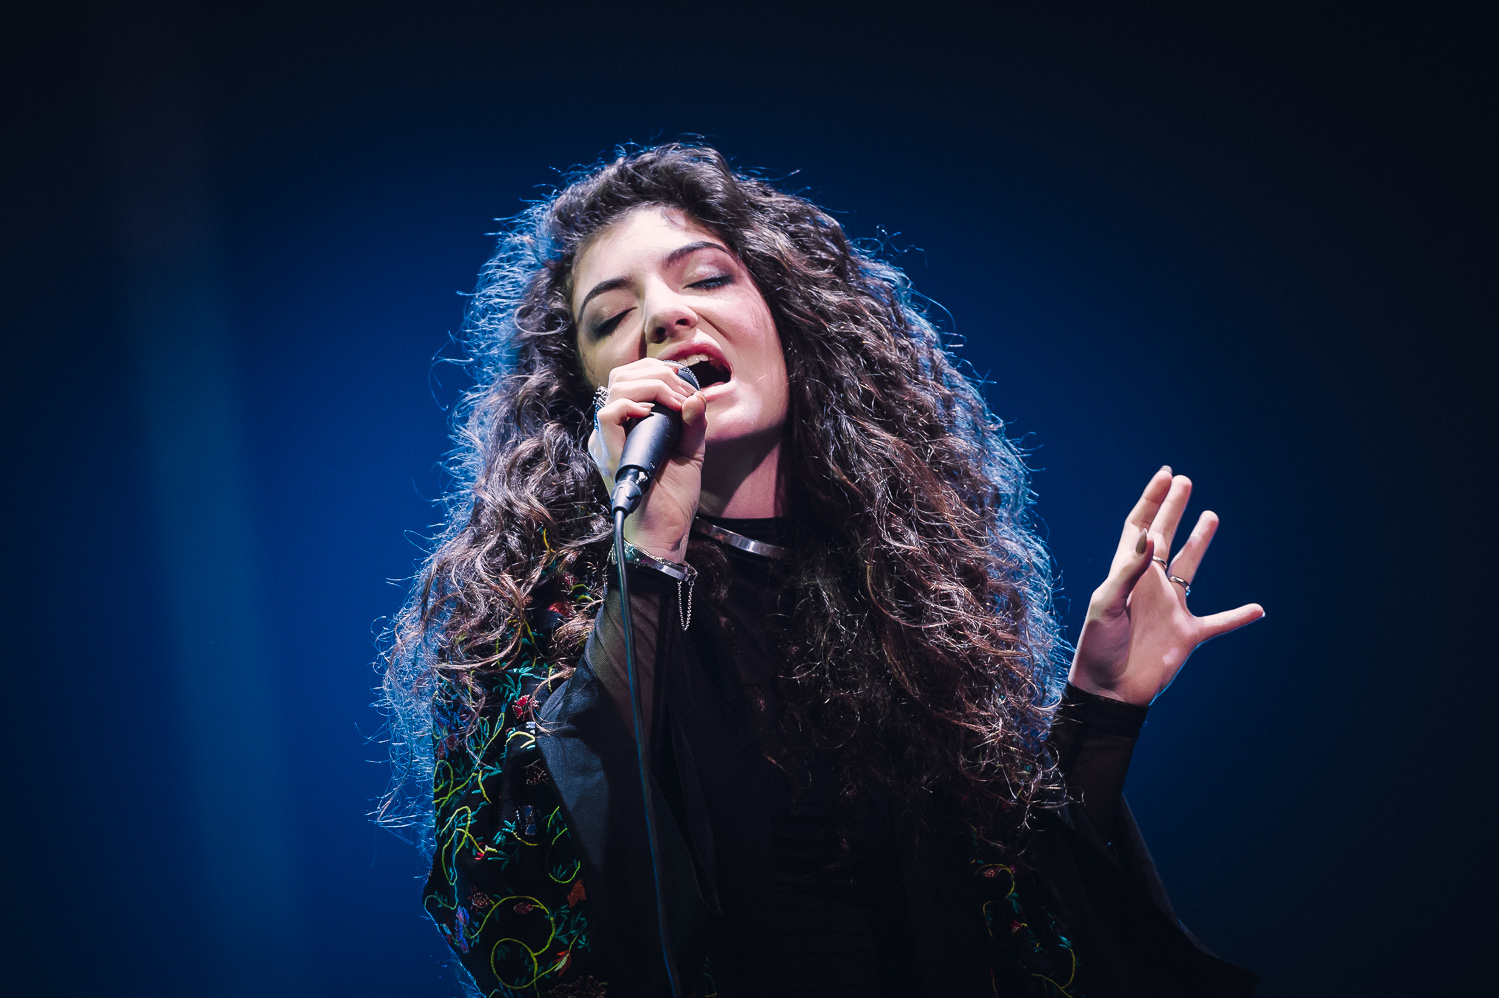 Lorde iHeart Radio_003_photo_©2013 Steve Dykes.jpg